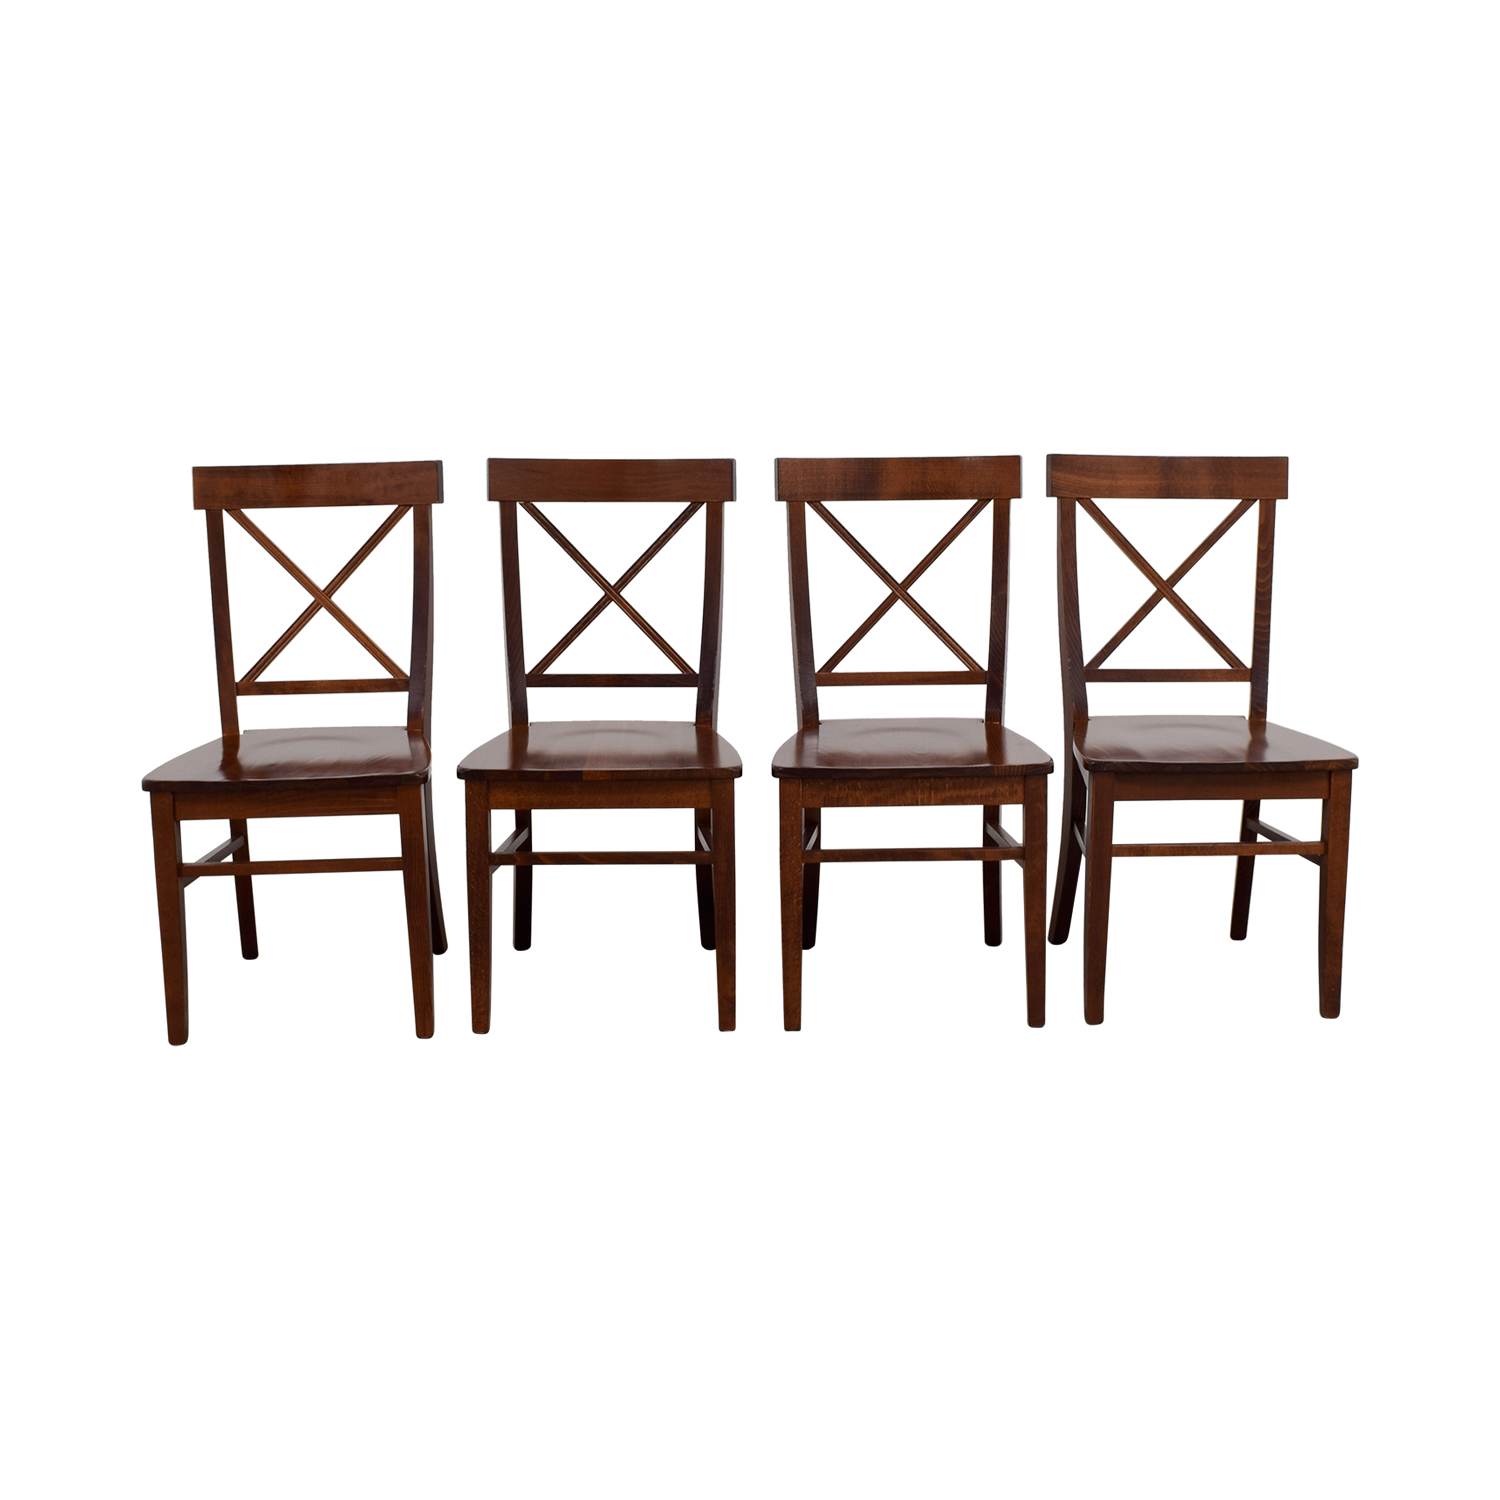 shop Pottery Barn Aaron Wood Dining Chairs Pottery Barn